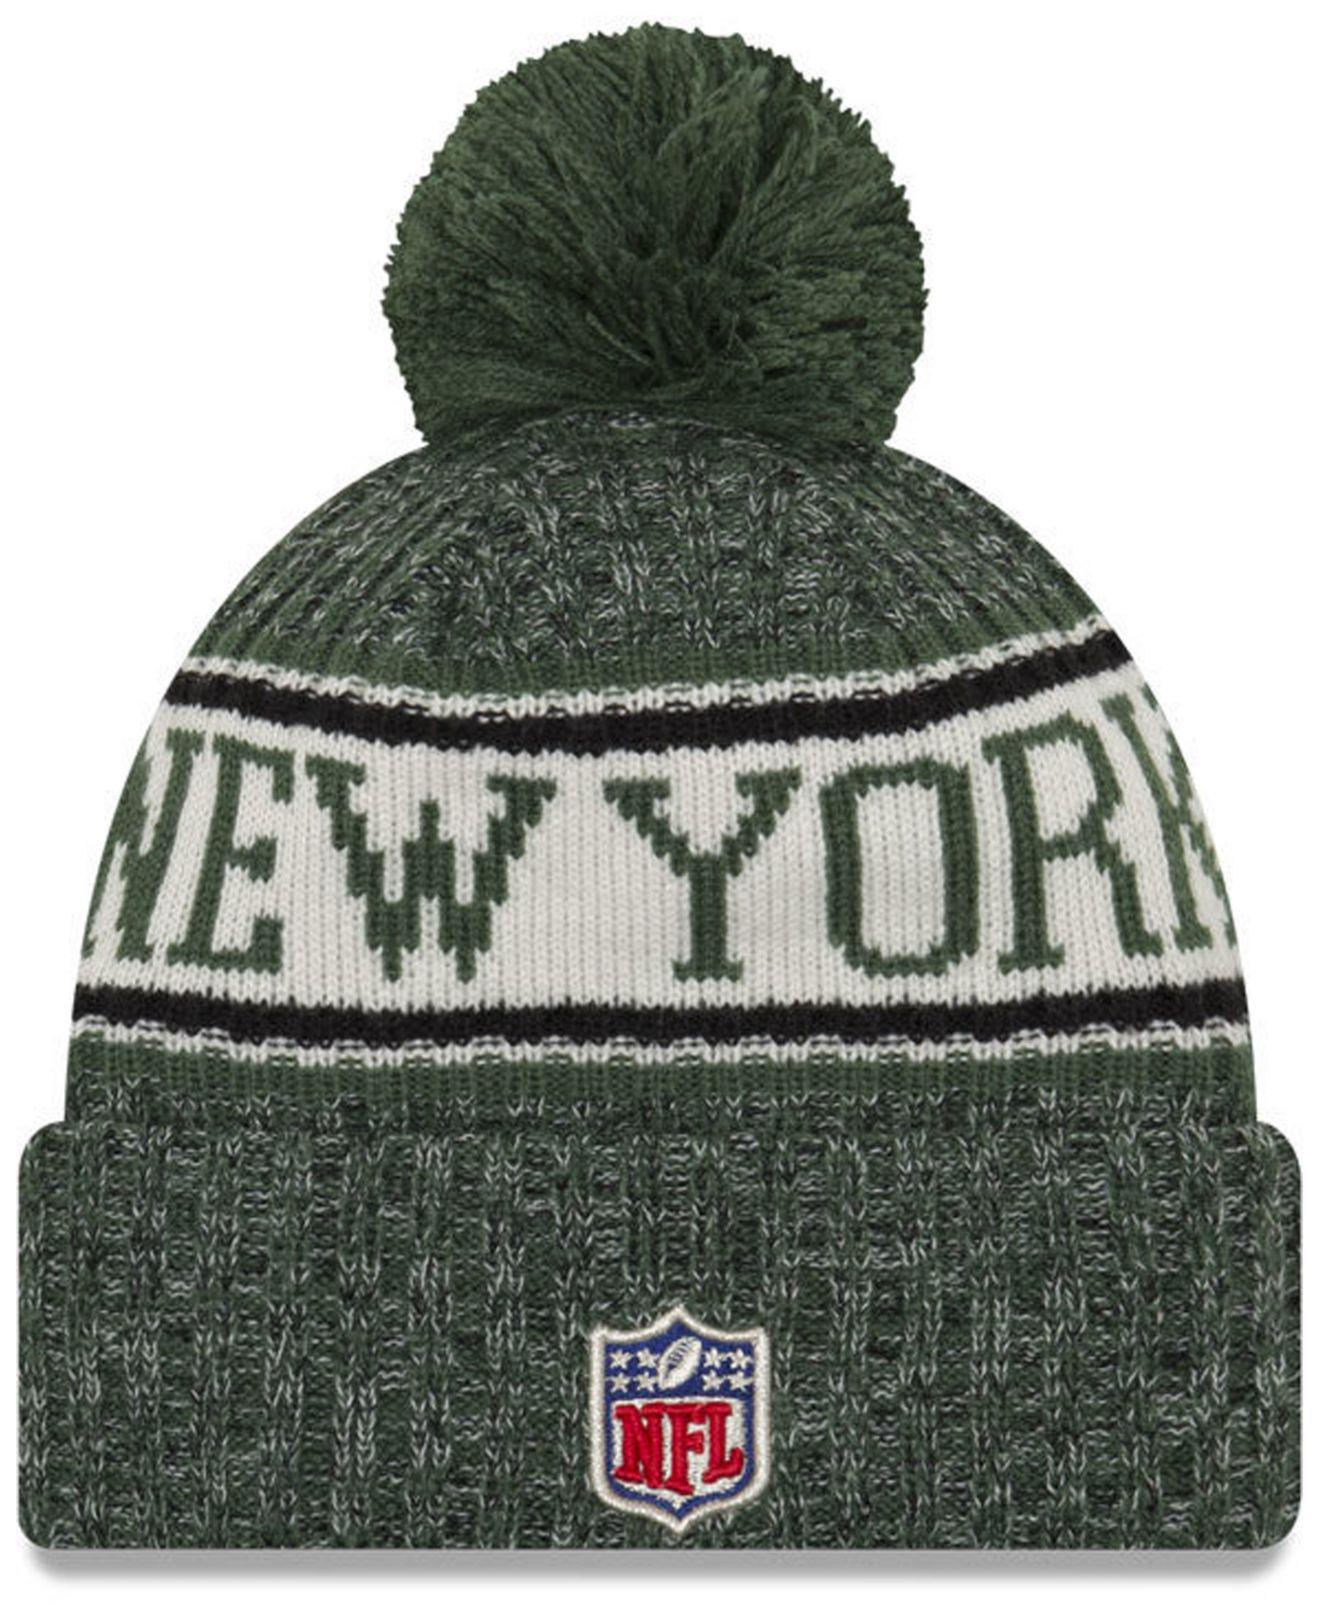 Lyst - Ktz New York Jets Sport Knit Hat in Green for Men c49196e54